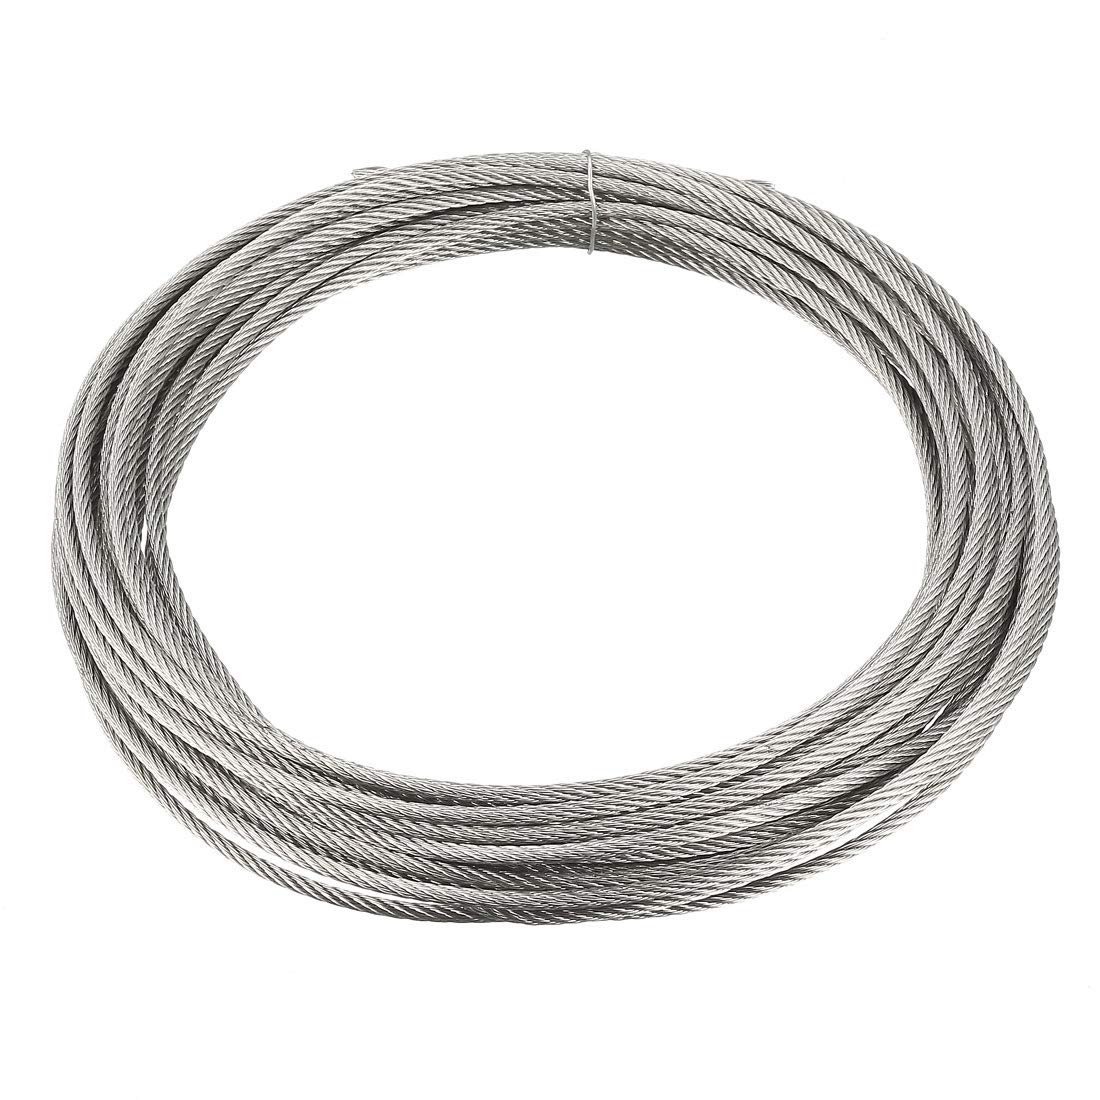 uxcell Stainless Steel Wire Rope Cable 6mm 0.24 inch Dia 5.6ft 1.7m Length 3 Gauge 304 Grade for Hoist Lifting Grinder Pulley Wheel